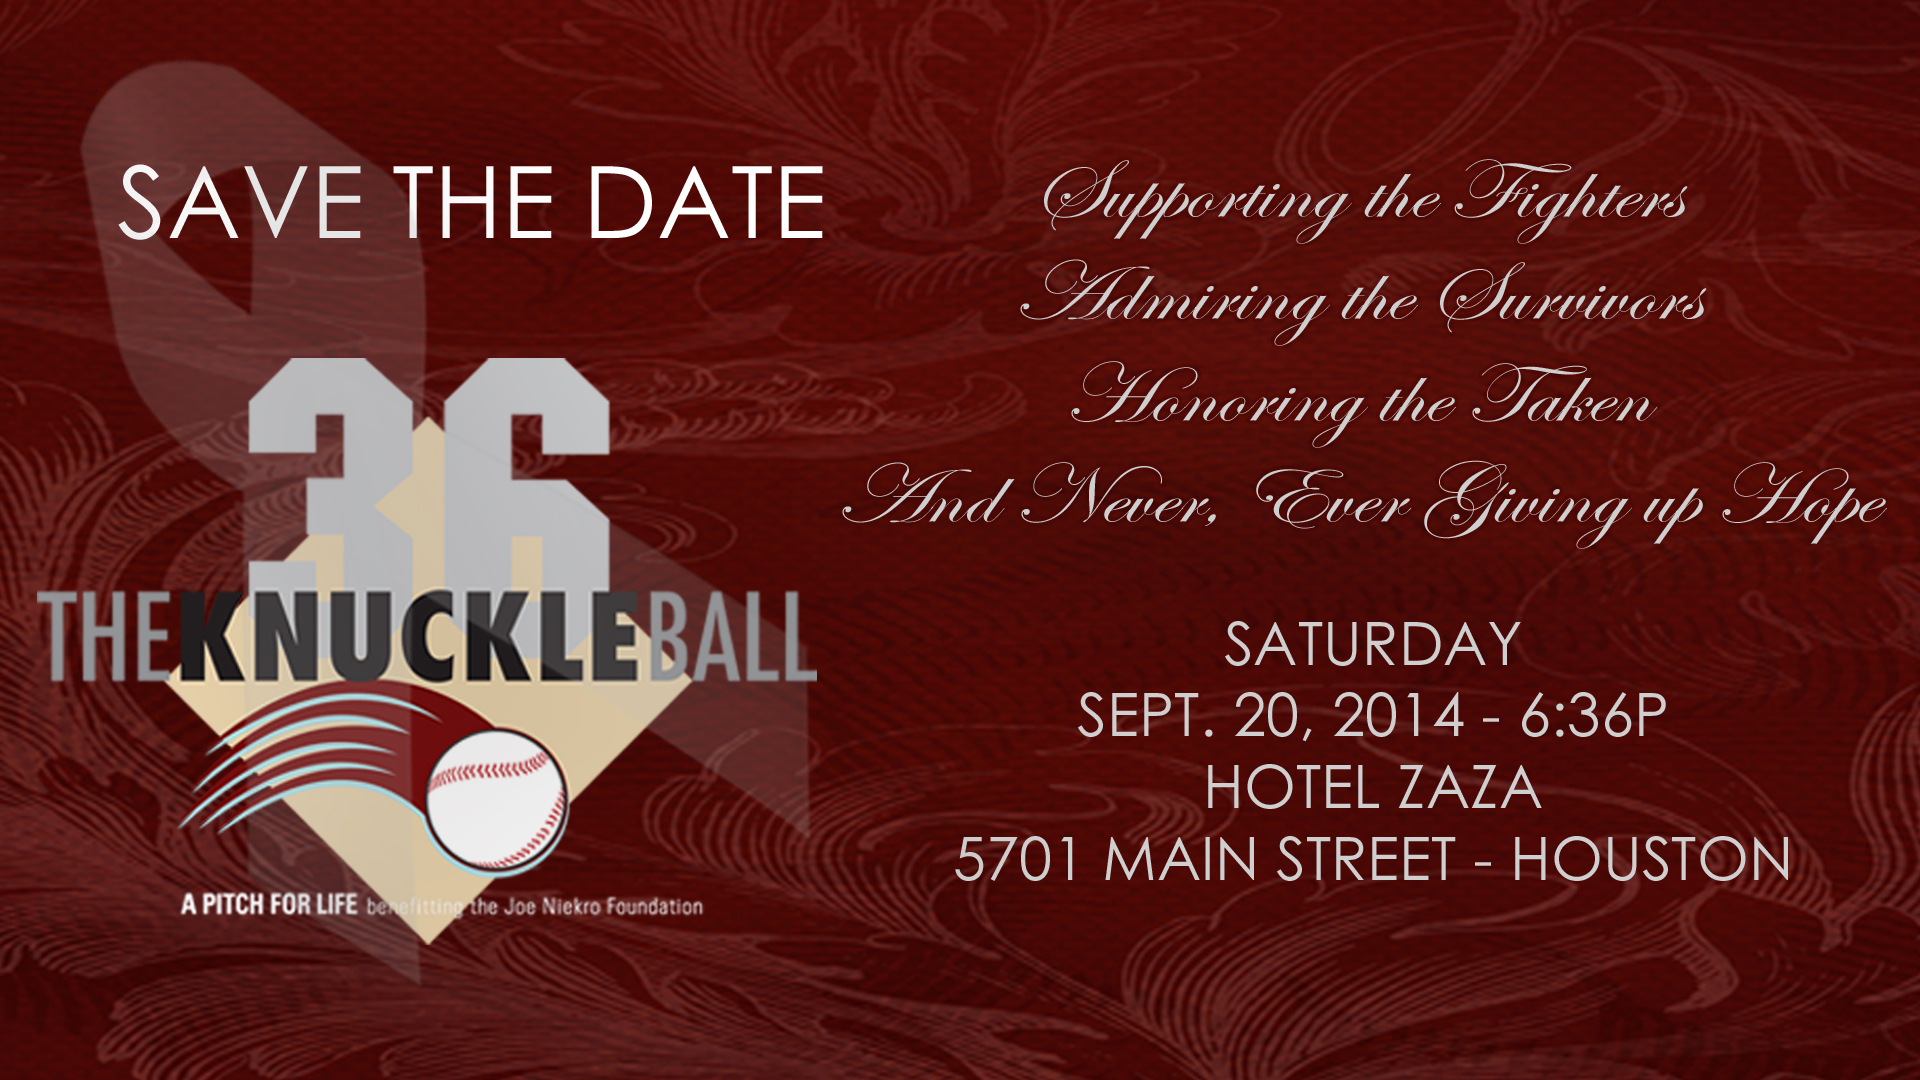 http://www.joeniekrofoundation.com/events/past-events/pastevents2015/phoenixknuckleball2015/attachment/web-banner-3/